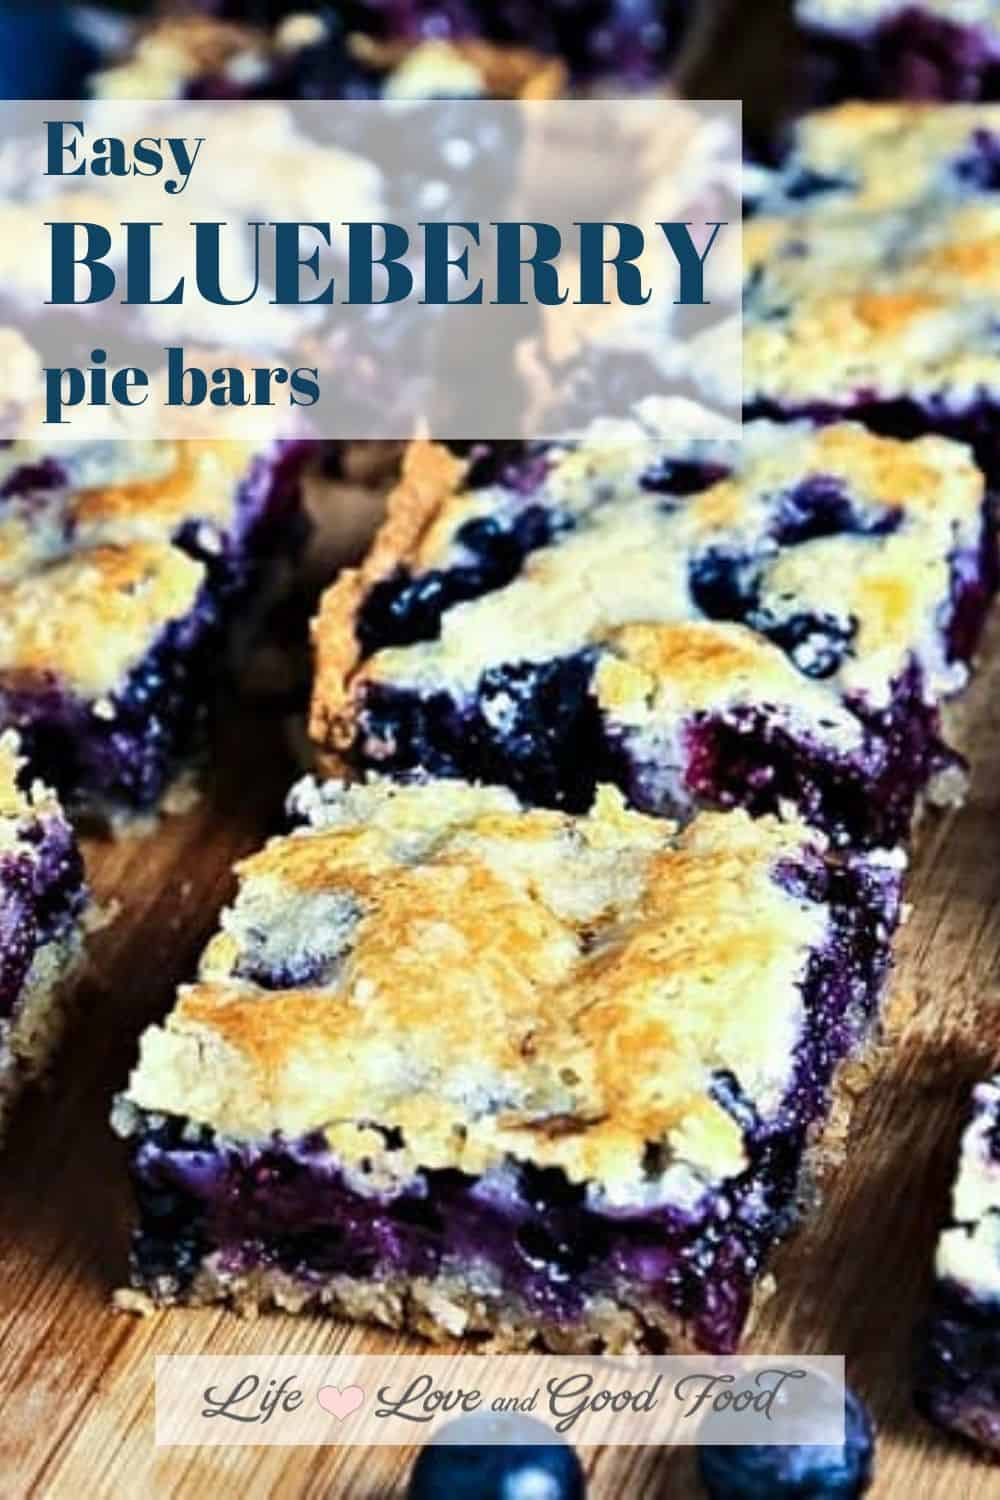 A hand-held blueberry pie? You betcha! Blueberry Pie Bars have a shortbread crust, fruity filling and crumble topping, and don't necessarily require a fork! #blueberrypiebars #blueberrydesserts